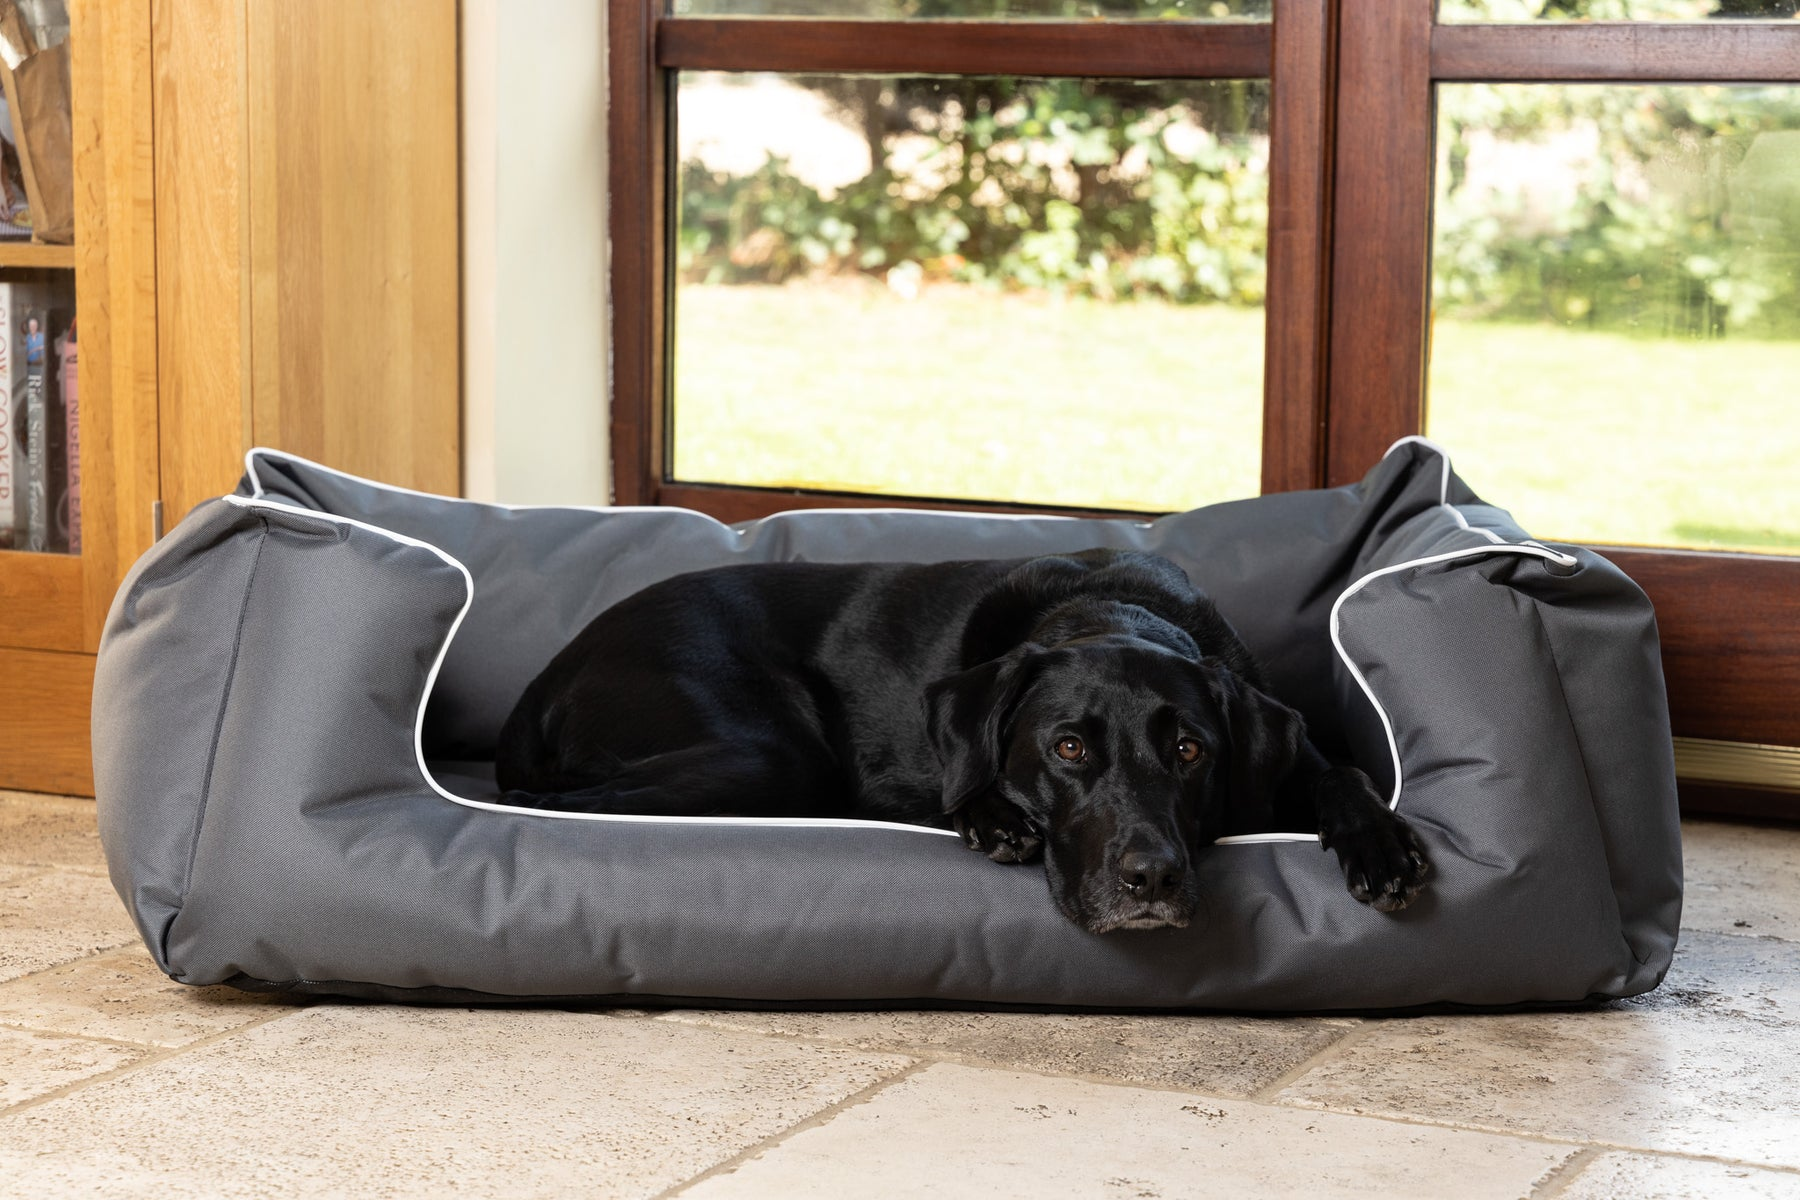 What are the Best Dog Beds for Large Dogs?